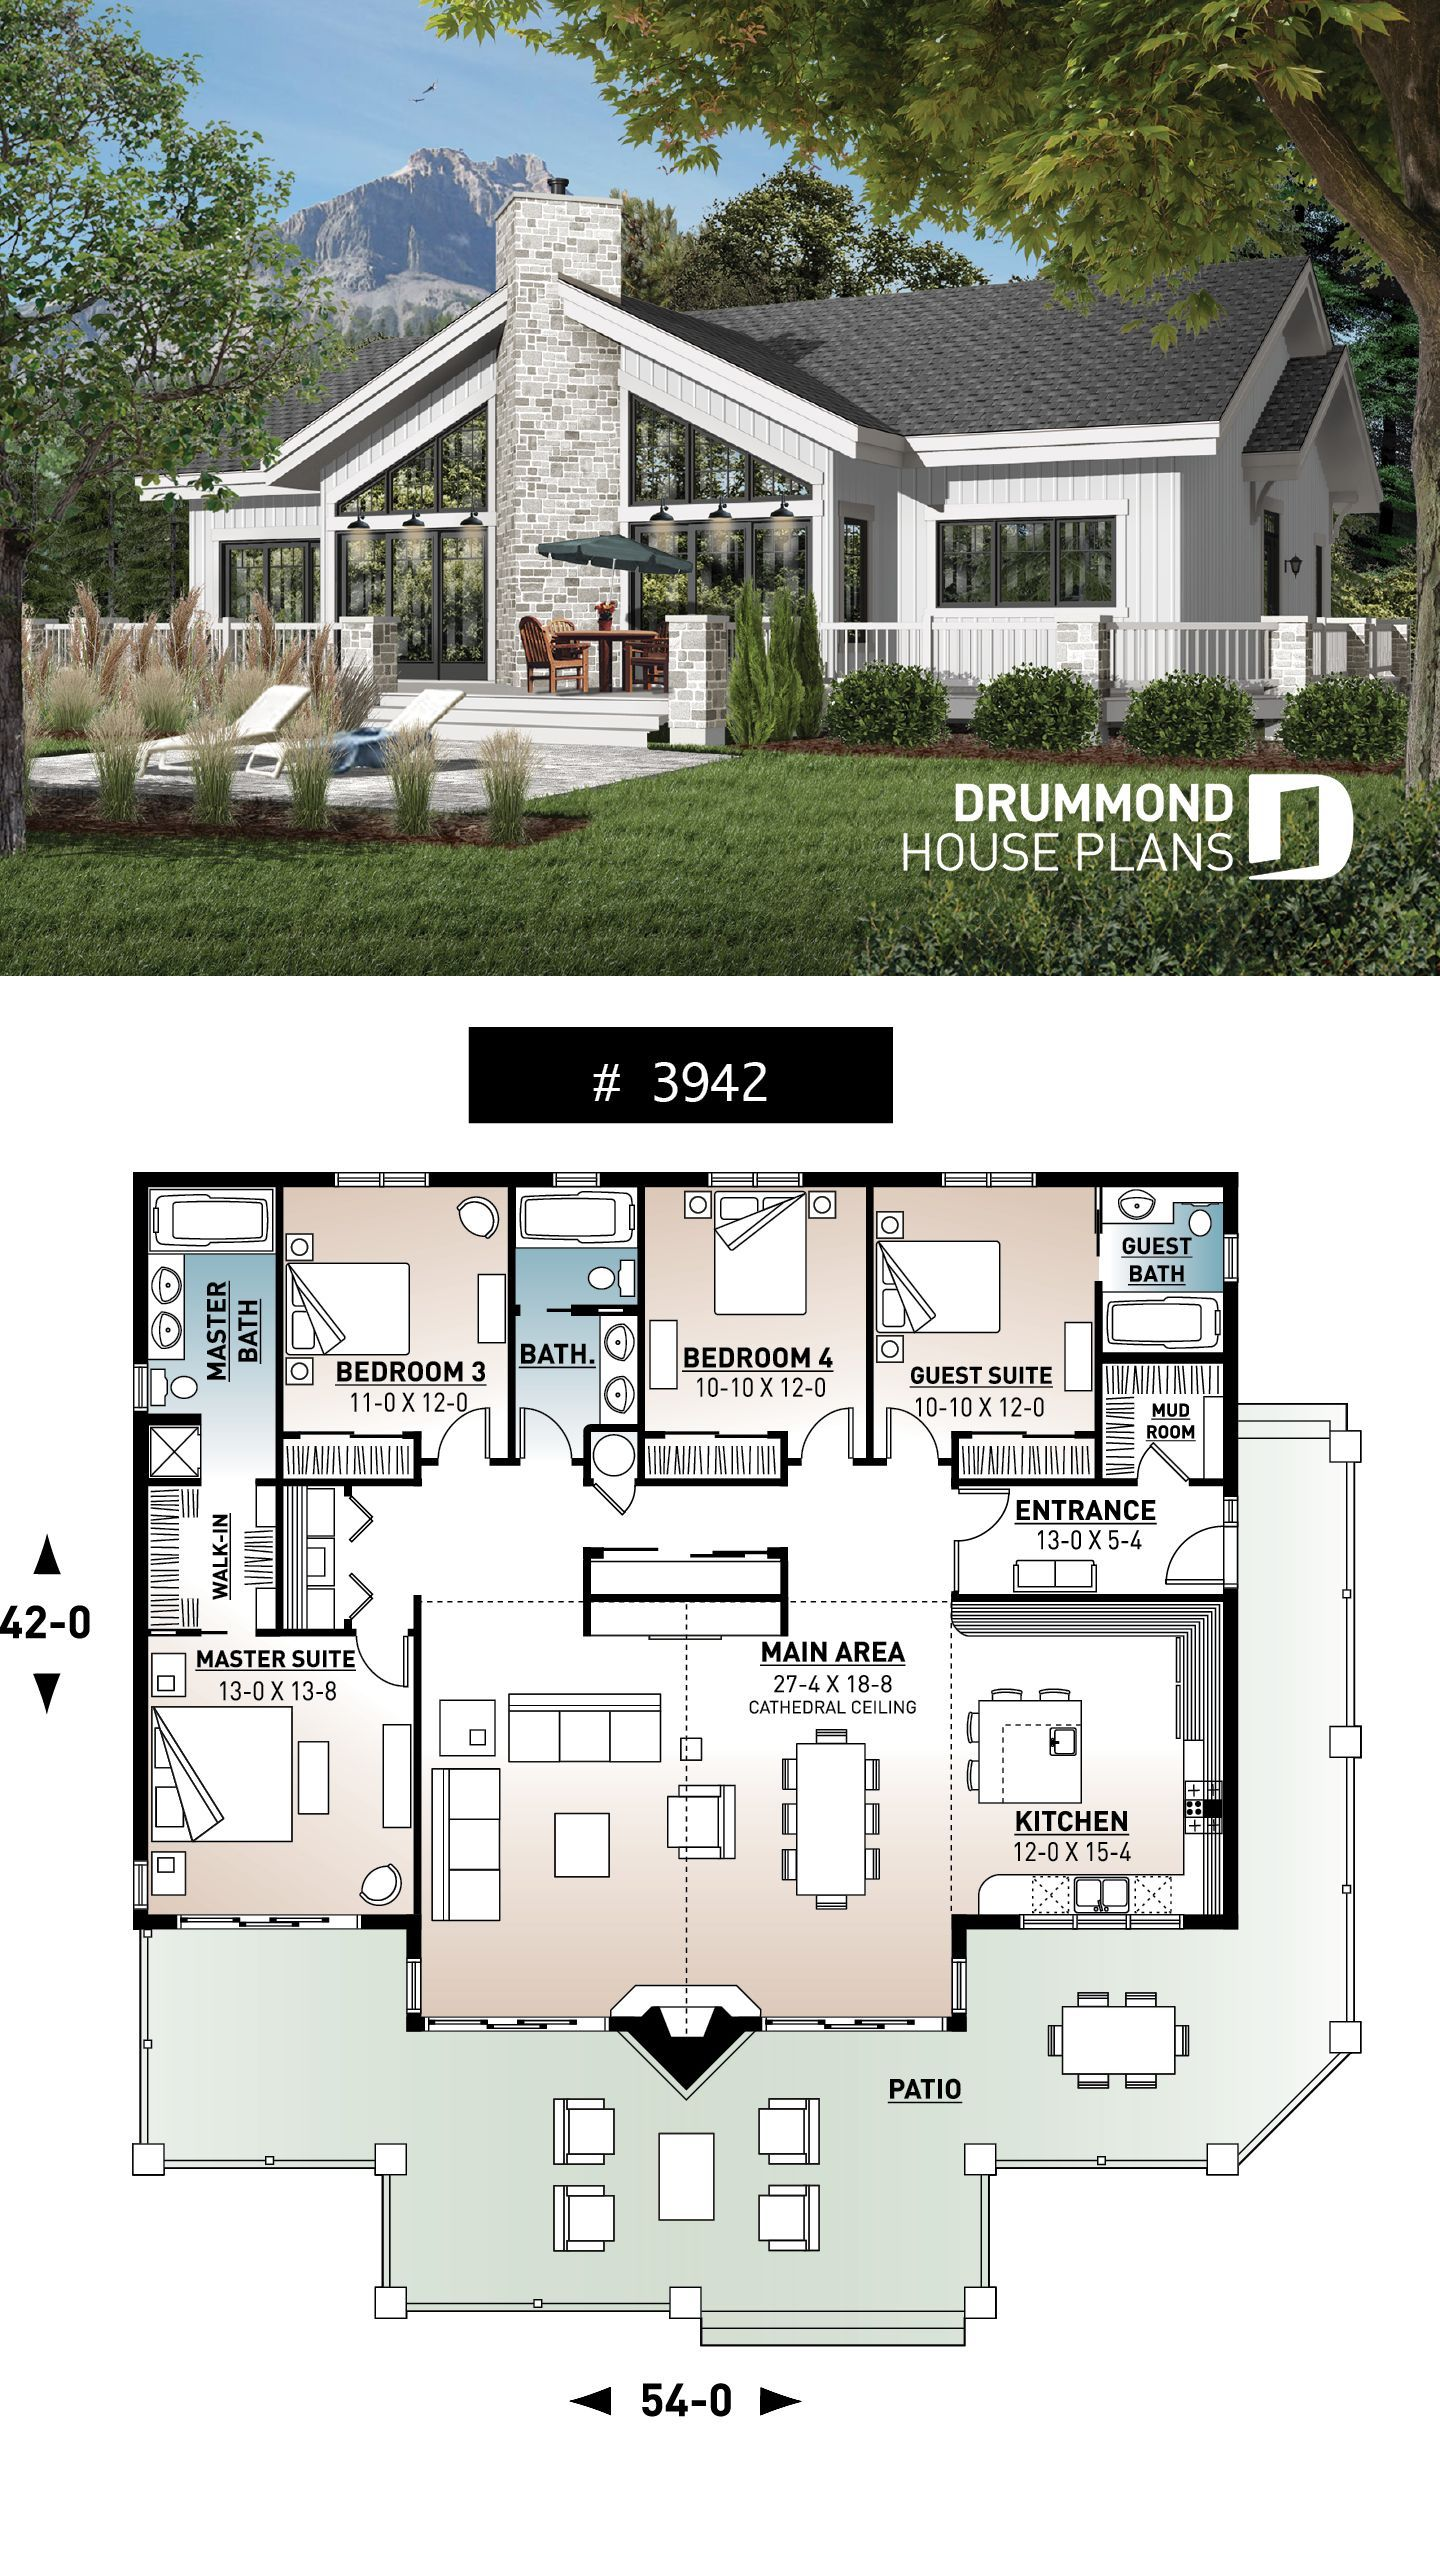 cathedral ceiling, 4 bedrooms, 3 bathrooms, 2 master suites, large terrace # 3942 #Bedrooms #House #lake house plans #Lakefront #Plan